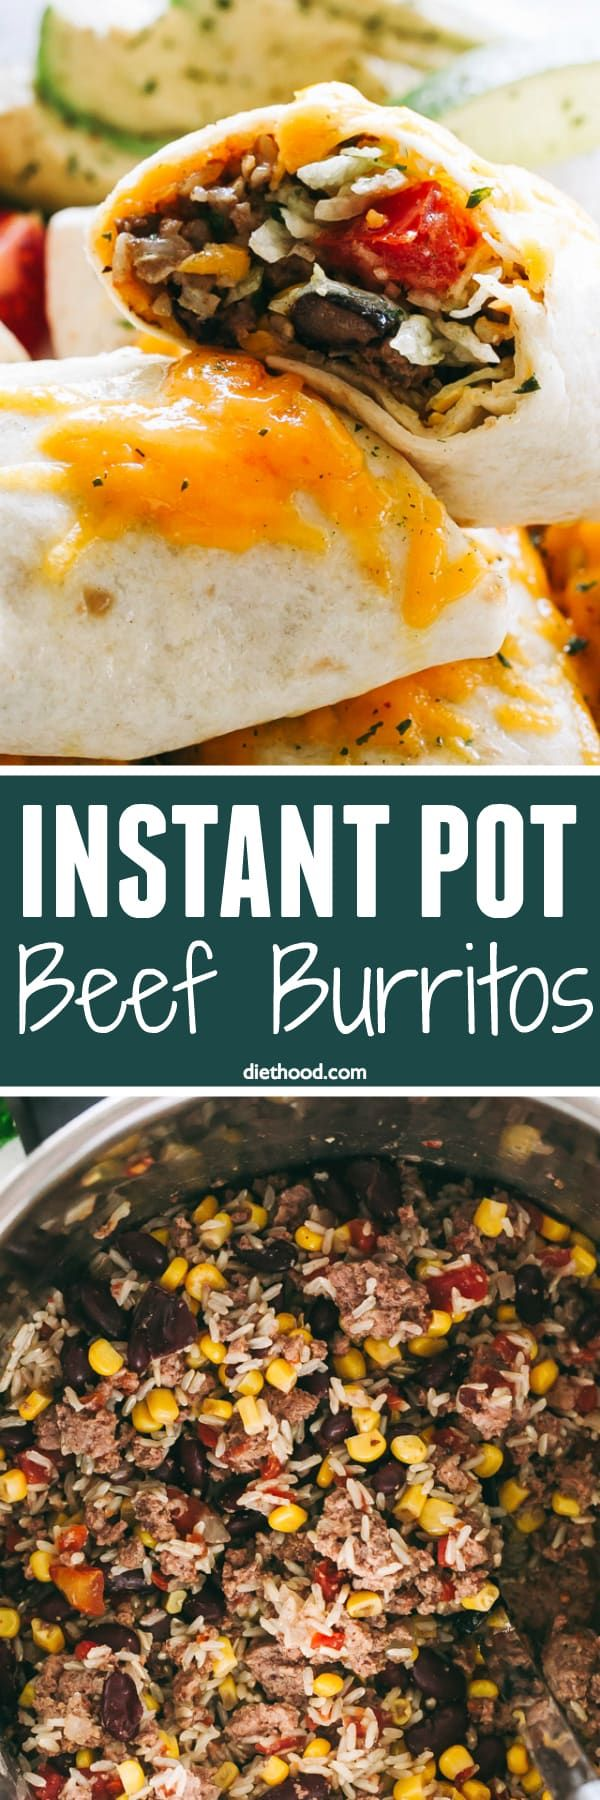 Instant Pot Beef Burritos Recipe - Filled with beef, rice, onions, tomatoes, beans, corn and cheese, these Instant Pot burritos are simple, FAST, filling and packed with flavor! Tender and delicious, this instant pot beef burrito filling has just the right amount of spice and it's perfect for a weeknight meal.